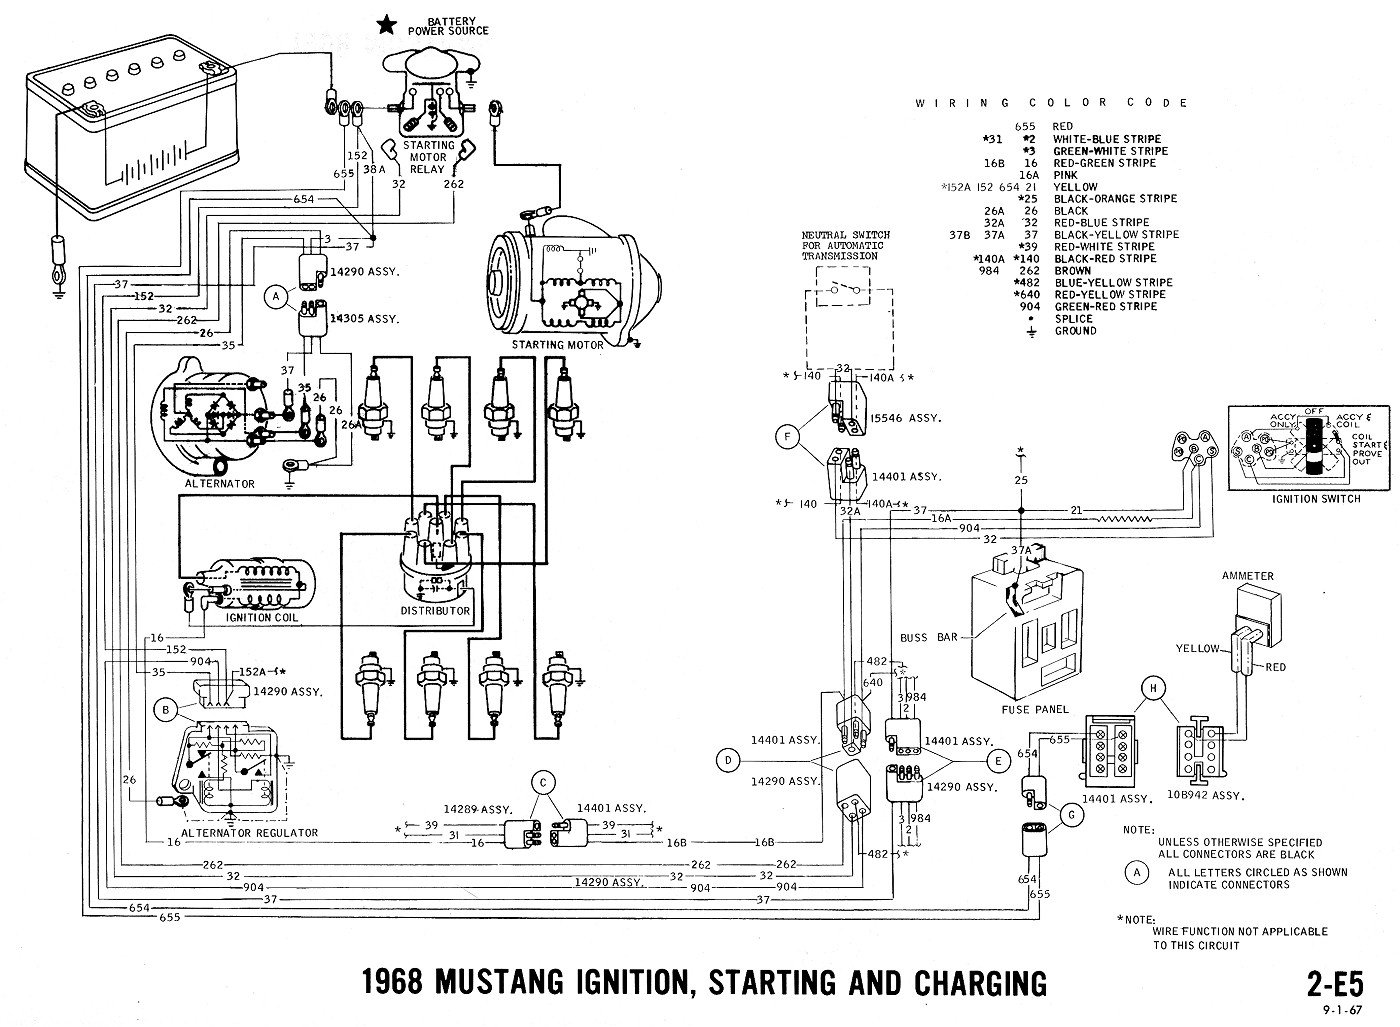 1972 ford f100 ignition switch wiring diagram ceiling fan red wire 70 mustang steering column get free image